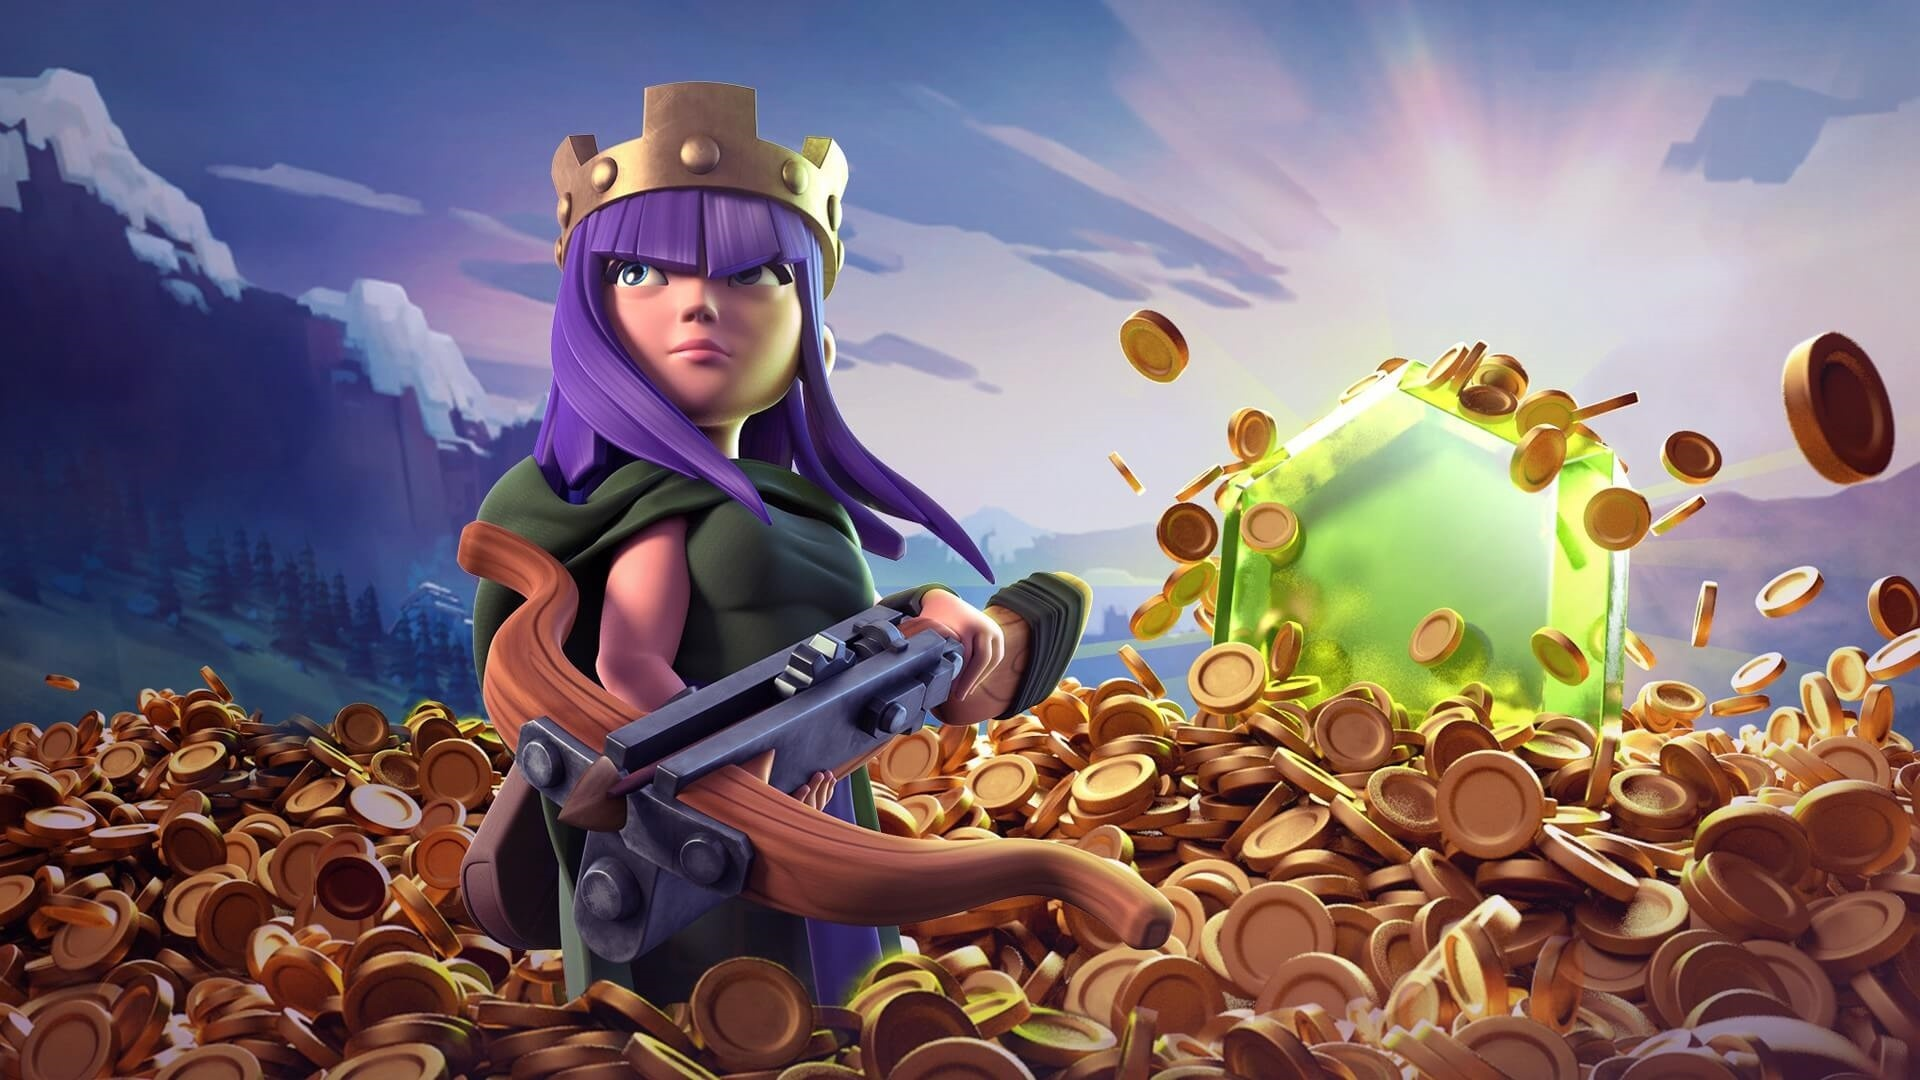 Clash Of Clans free wallpaper